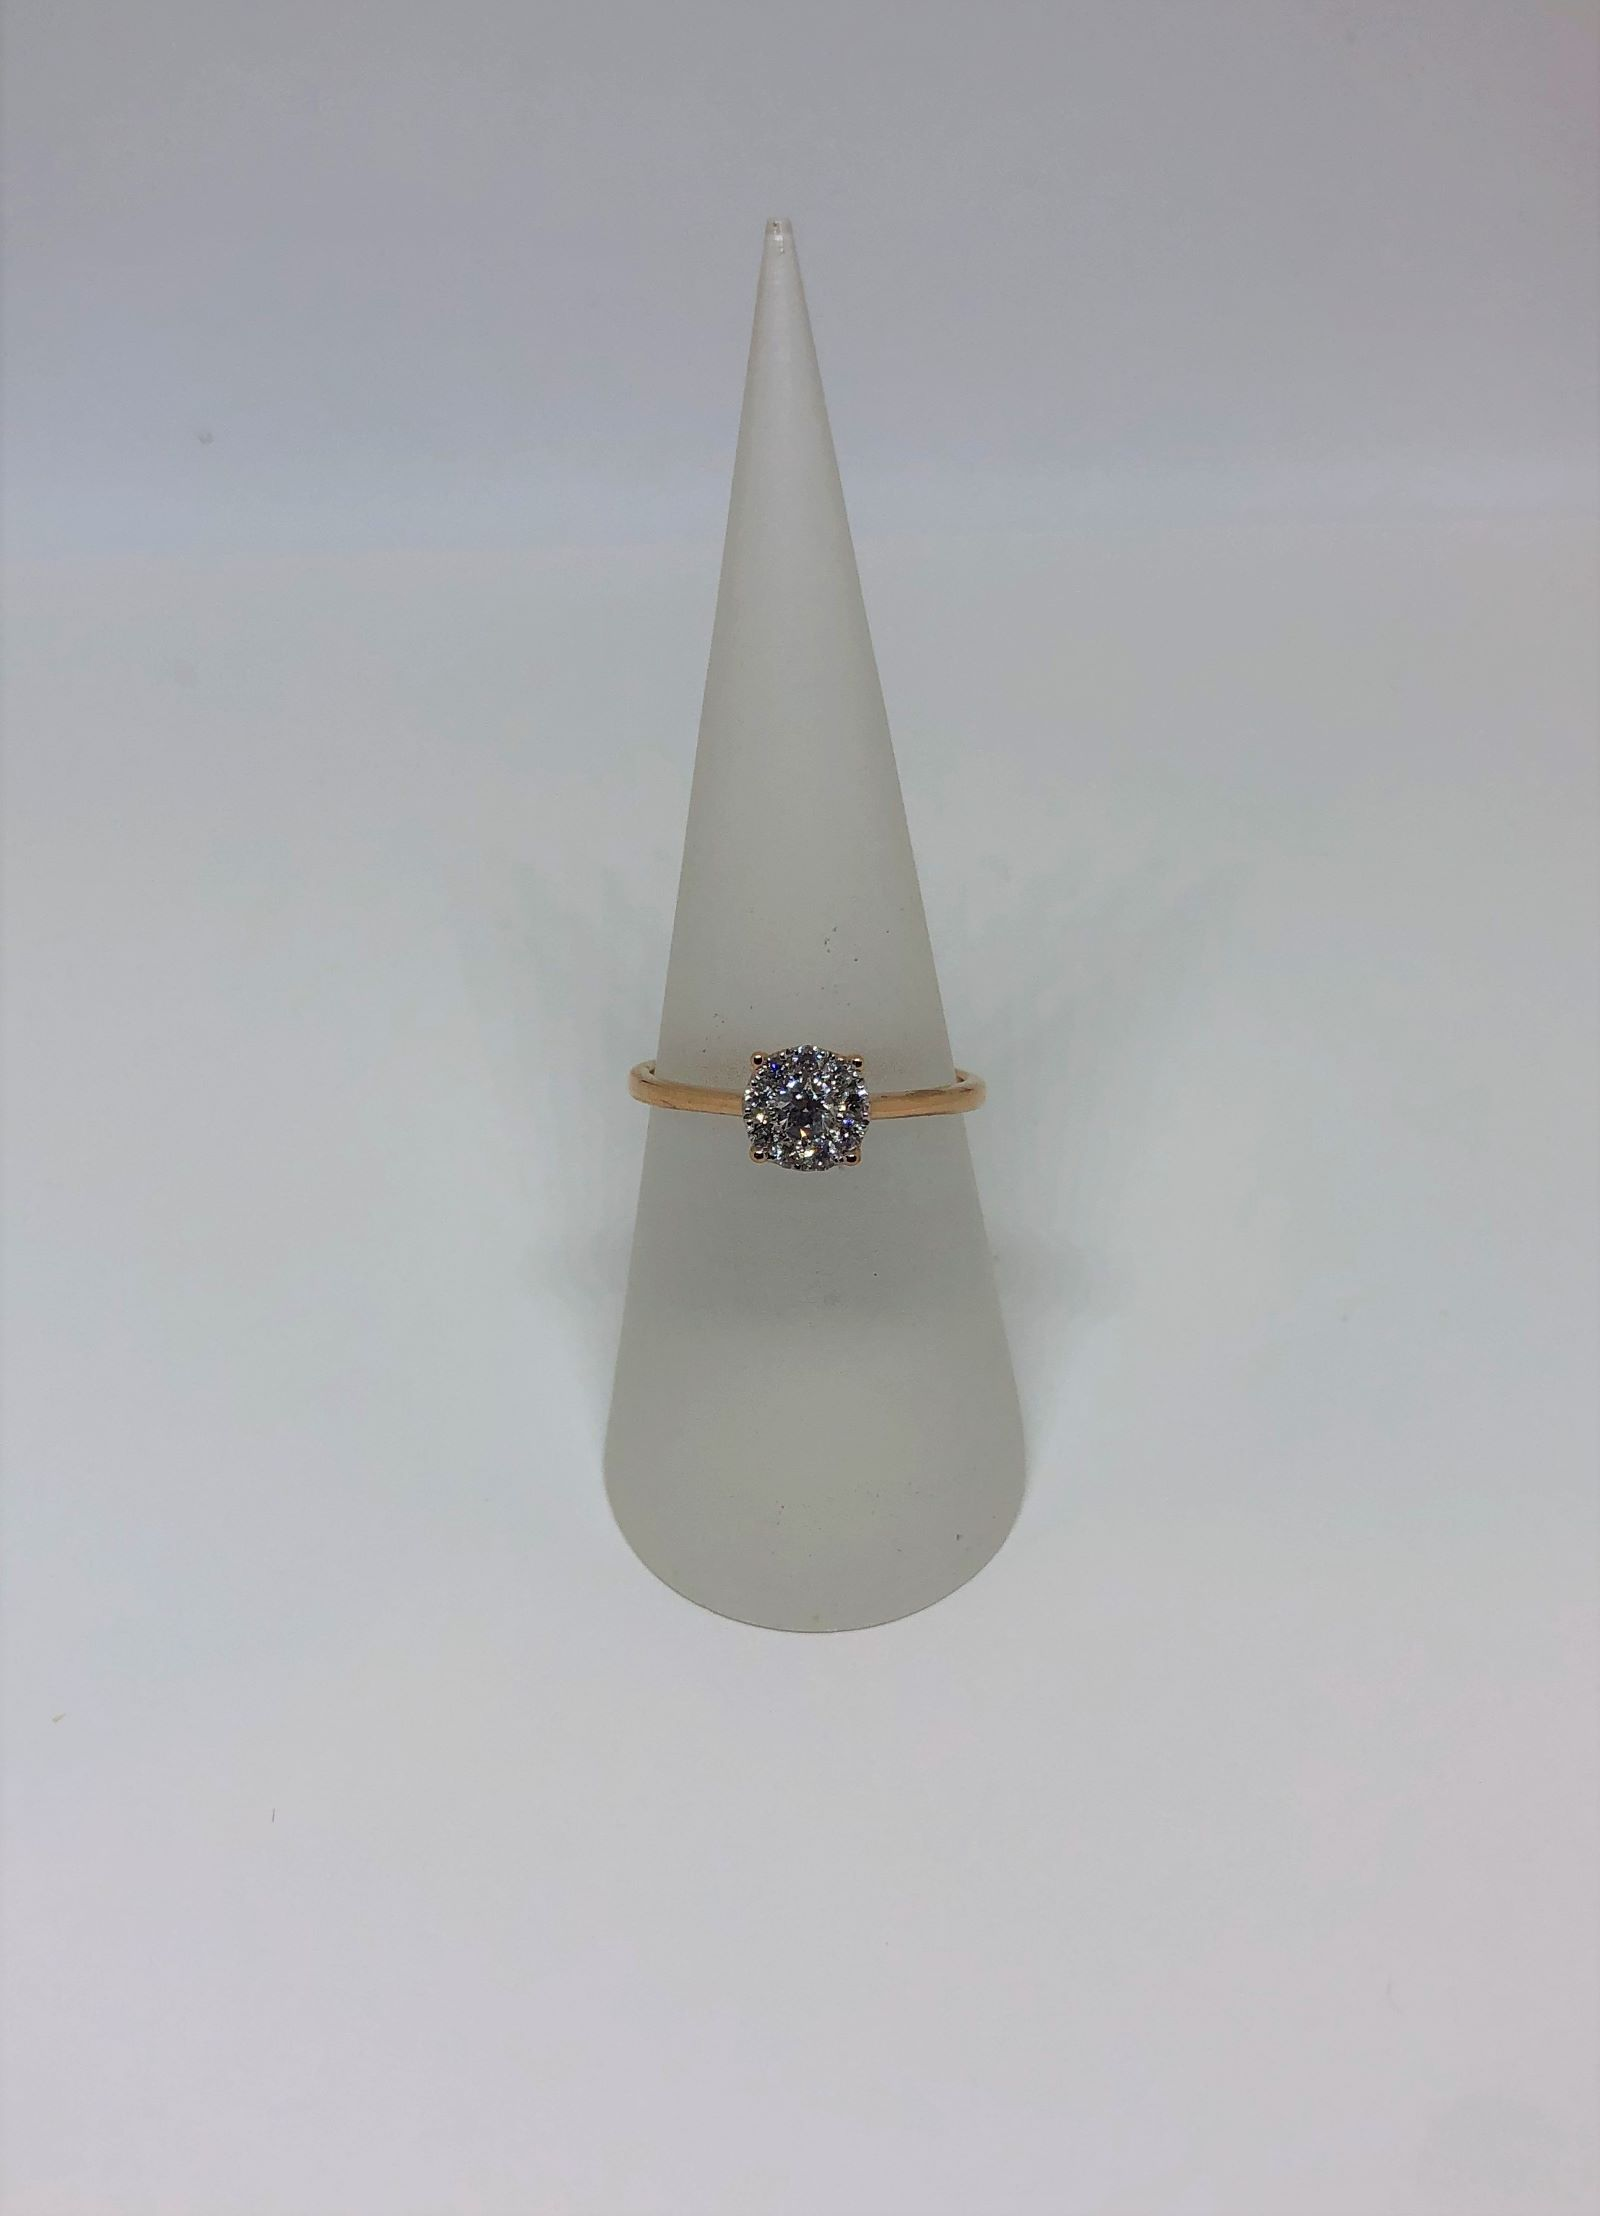 1/3 Carats Total Weight Rose Gold Diamond Ring